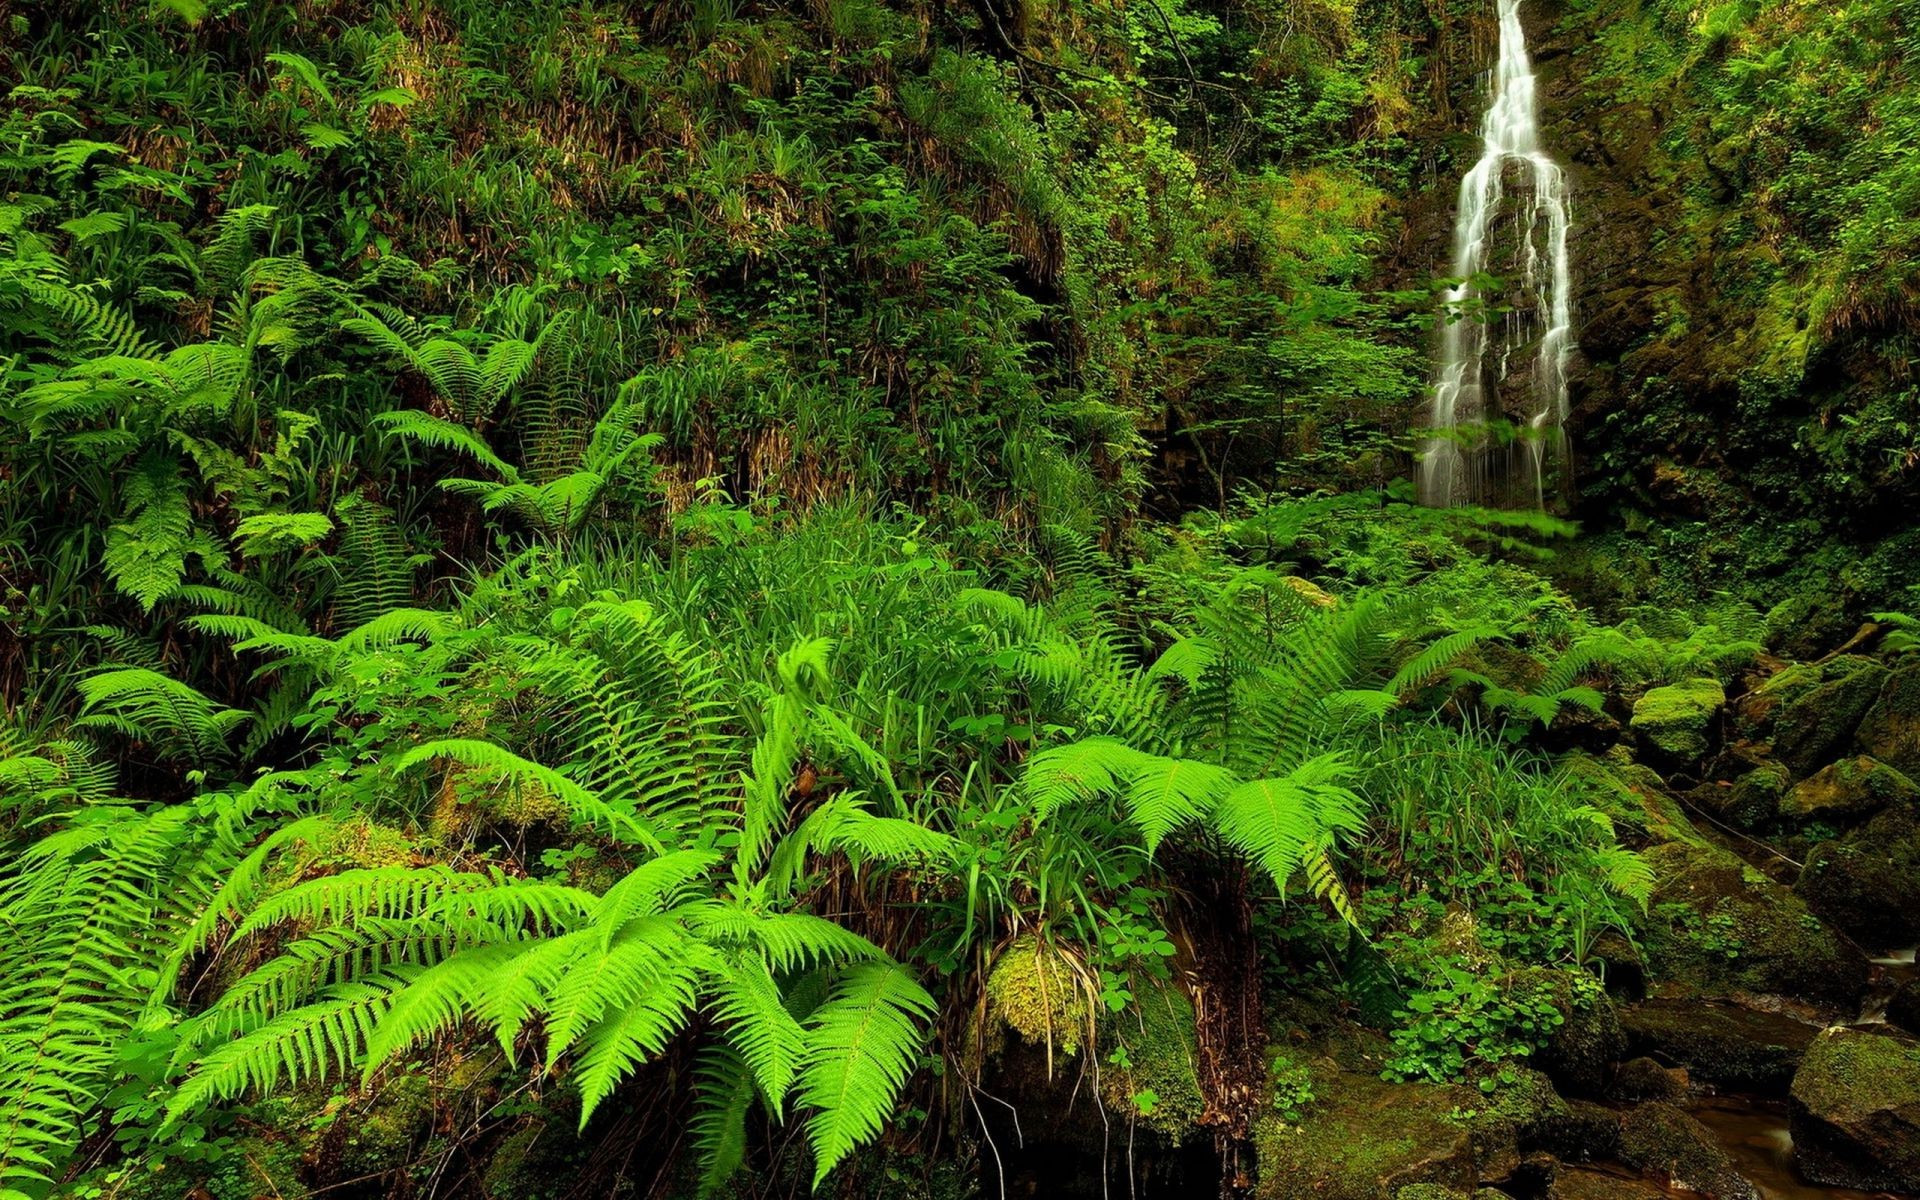 Mountain stream nature fern